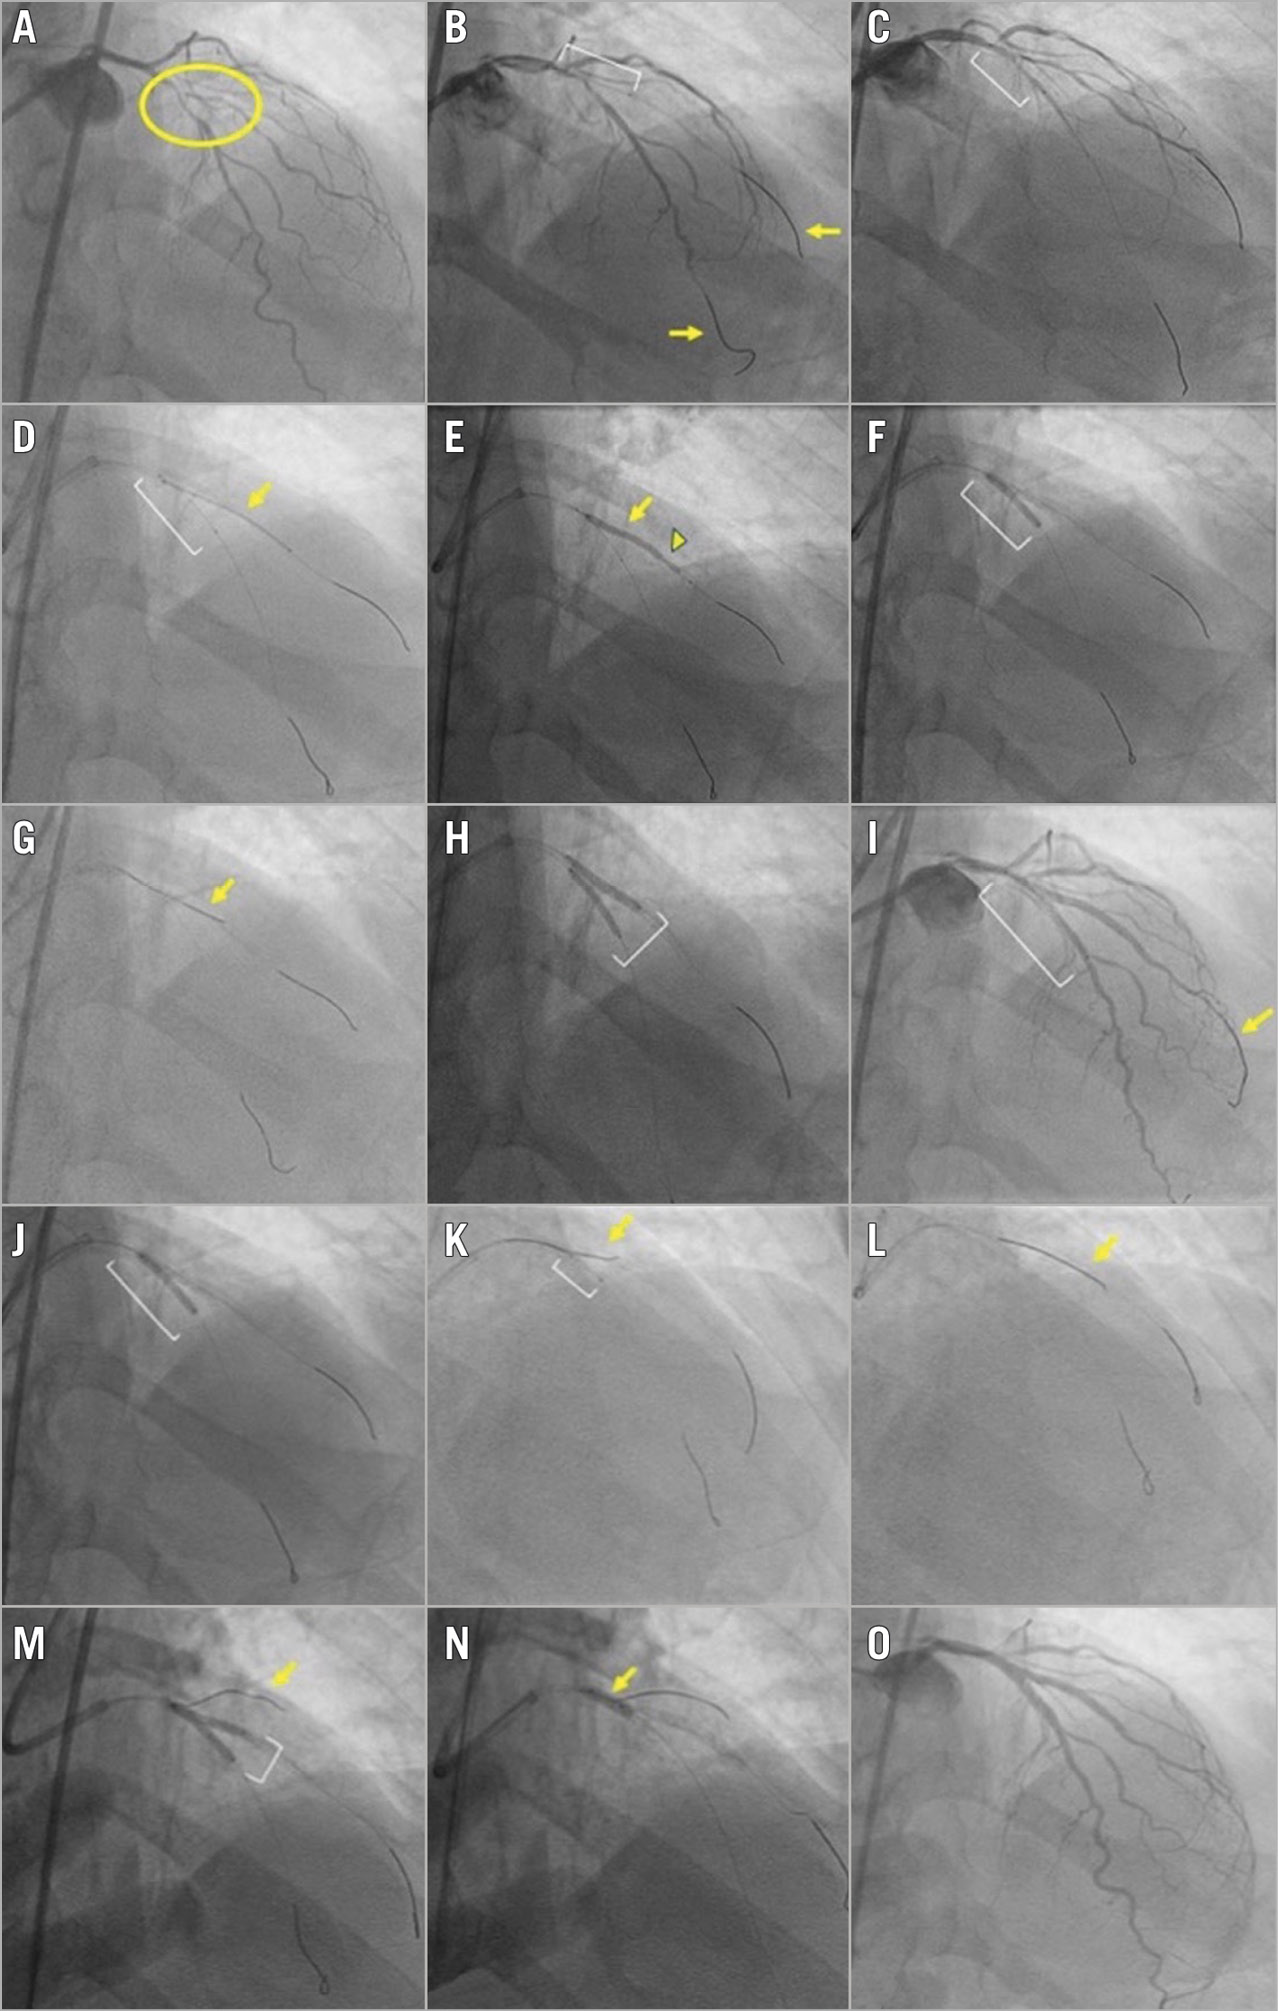 Figure 1. Angiographic case example of a bifurcation lesion treated successfully with the double kissing crush technique. A) Medina 1,1,1 bifurcation lesion (yellow circle) with significant disease involving the mid left anterior descending (LAD) artery and the bifurcating second diagonal branch. The bifurcation angle is <70°. The side branch supplies a large myocardial segment. B) Wires (yellow arrows) are placed in both the LAD (main vessel) and the diagonal branch (side branch). A balloon (white bracket) is placed in the diagonal branch for predilation. C) A balloon (white bracket) is placed in the LAD for predilation. D) A stent (yellow arrow) is positioned in the diagonal branch. A balloon (white bracket) is pre-positioned in the LAD prior to deploying the diagonal stent to allow subsequent crushing of the diagonal branch stent. E) The diagonal branch stent is deployed (yellow arrow). The angiographic result in the diagonal is optimised (for example to correct stent underexpansion indicated by arrowhead) prior to crushing the side branch stent. F) The LAD balloon (white bracket) is inflated, crushing the diagonal stent. G) A new wire (yellow arrow) is used to re-wire the crushed diagonal branch stent and the original diagonal wire is removed. H) The first simultaneous kissing balloon inflation (white bracket) is performed in the LAD and diagonal branch. I) The LAD stent is positioned (white bracket); the diagonal wire (yellow arrow) is not removed. J) The LAD stent (white bracket) is deployed, followed by proximal optimisation technique (POT) of the main vessel stent (not imaged). K) Due to difficulty re-wiring the diagonal branch, a Twin-Pass® Torque (Teleflex) dual-lumen microcatheter (white bracket) is used, with successful advancement of a new wire (yellow arrow) through the over-the-wire port of the device. L) The jailed diagonal wire (yellow arrow) is removed. M) The second simultaneous kissing balloon inflation (white bracket) is performed. A wire (yello